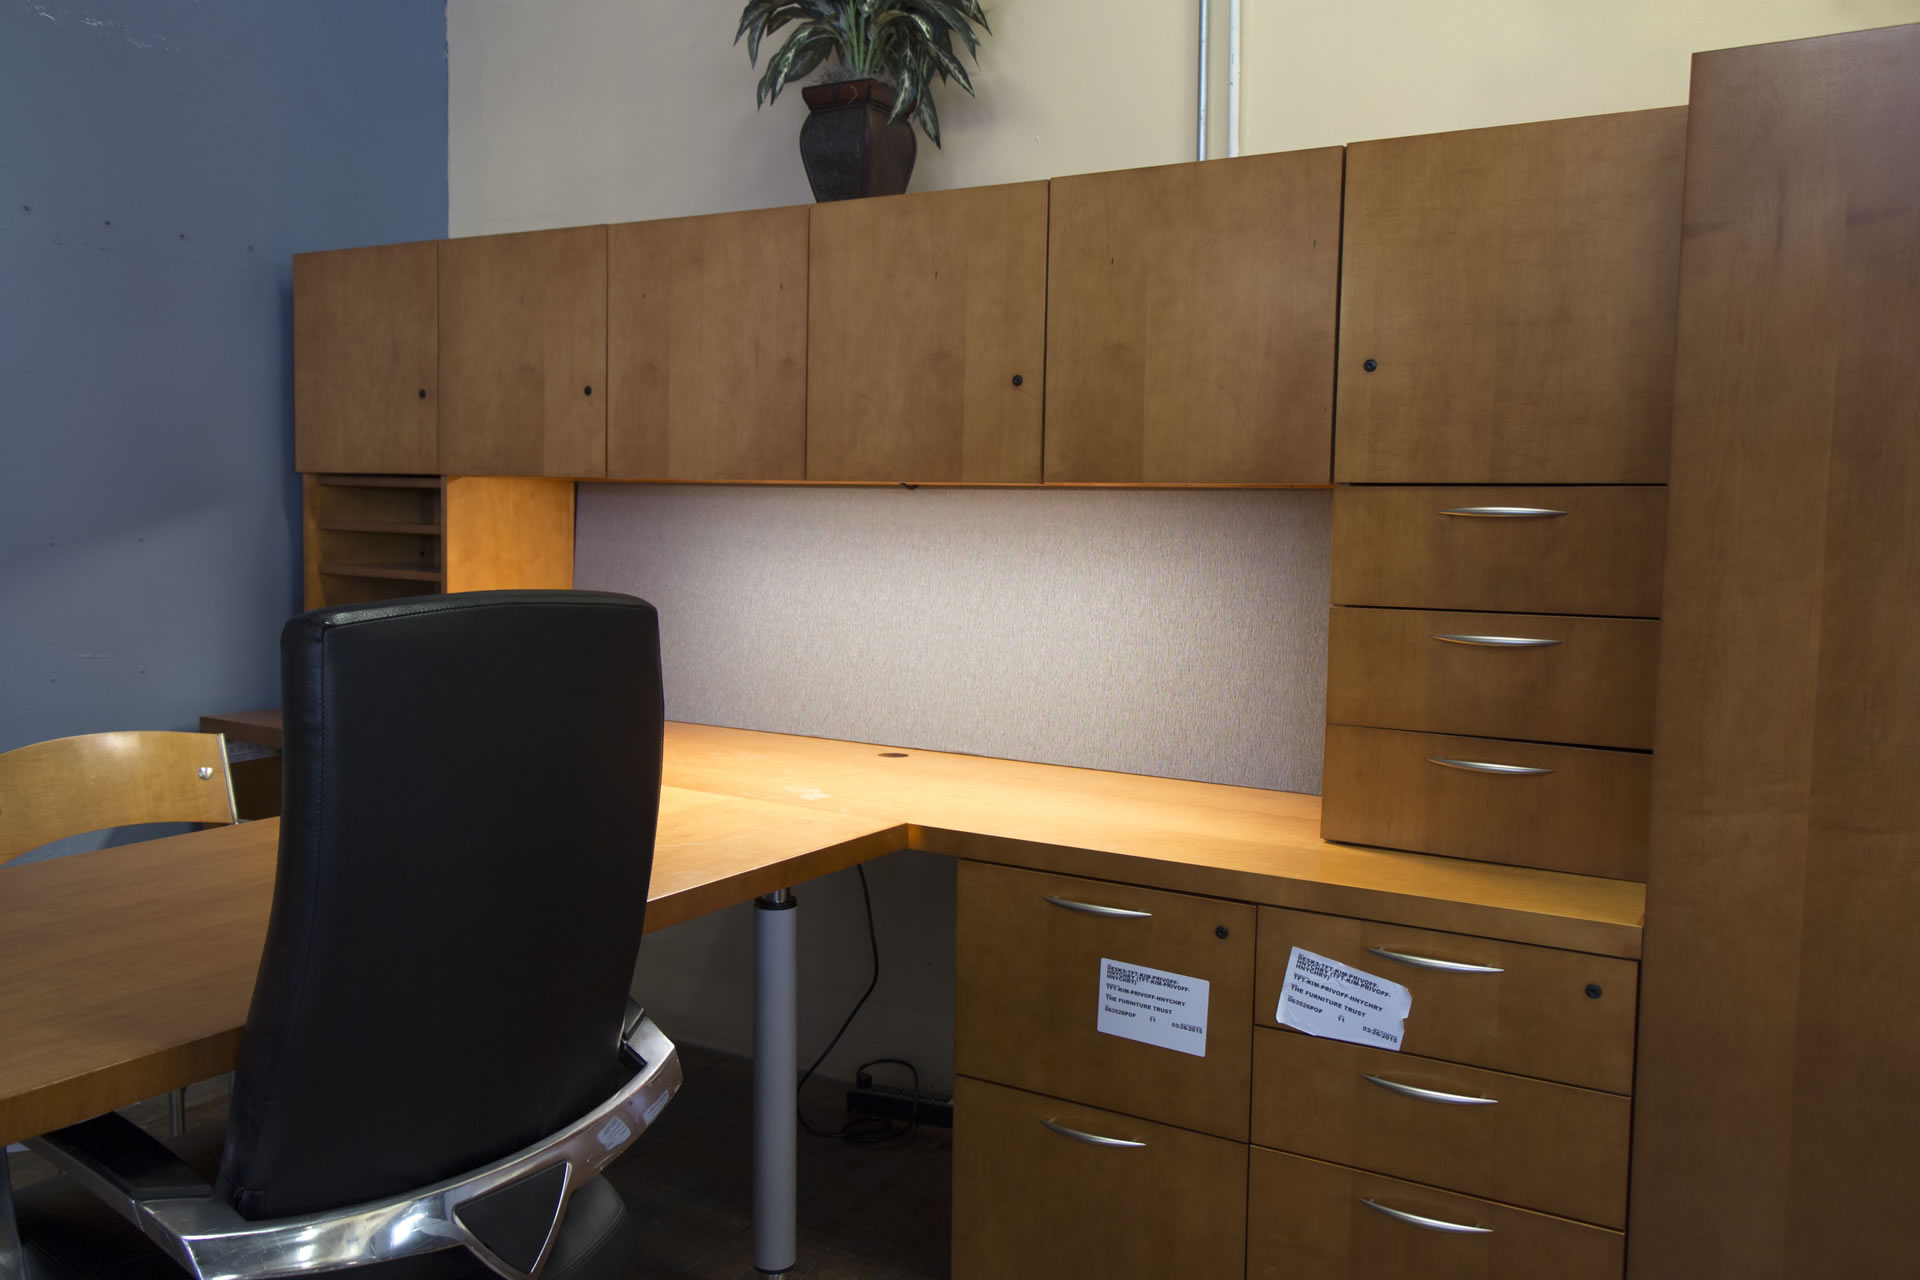 peartreeofficefurniture_peartreeofficefurniture_mg_5503.jpg